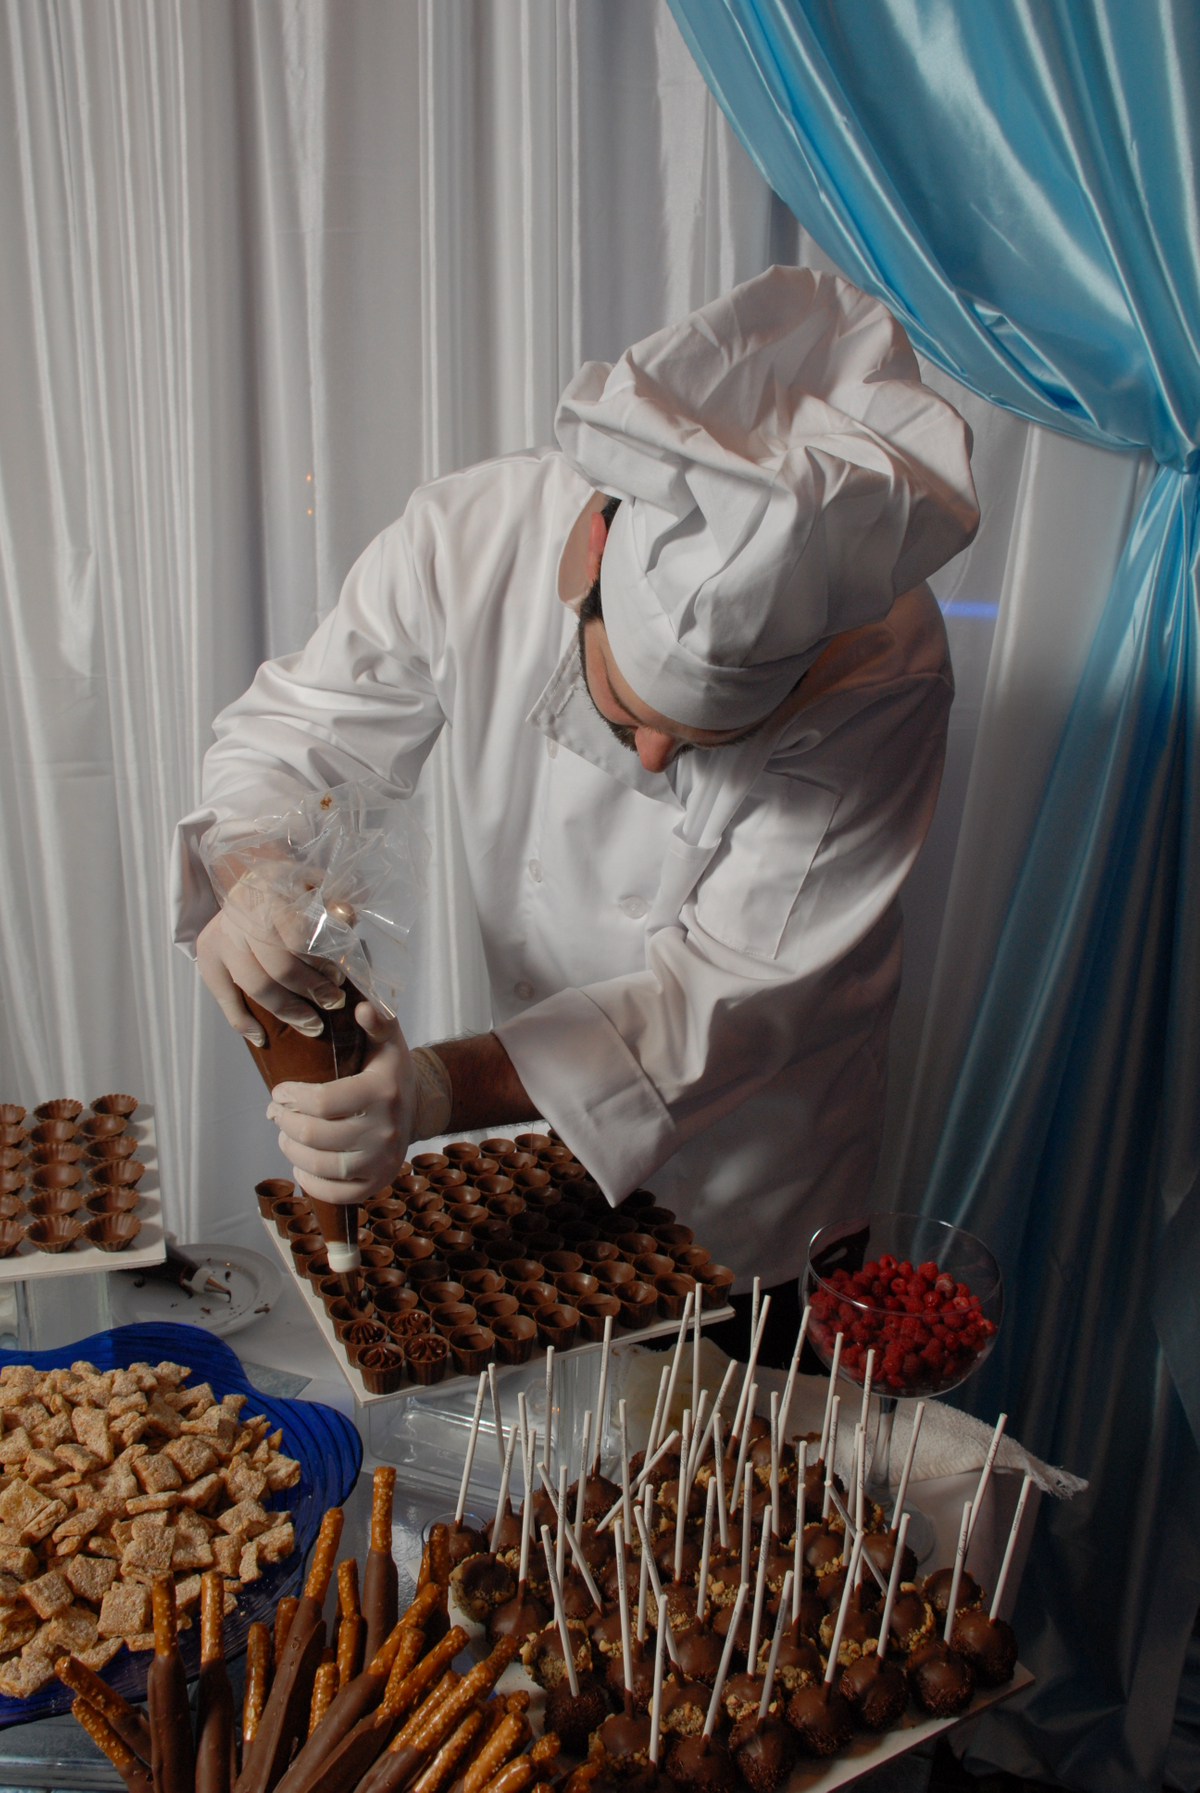 Copy of Hand Piped Truffles.jpg